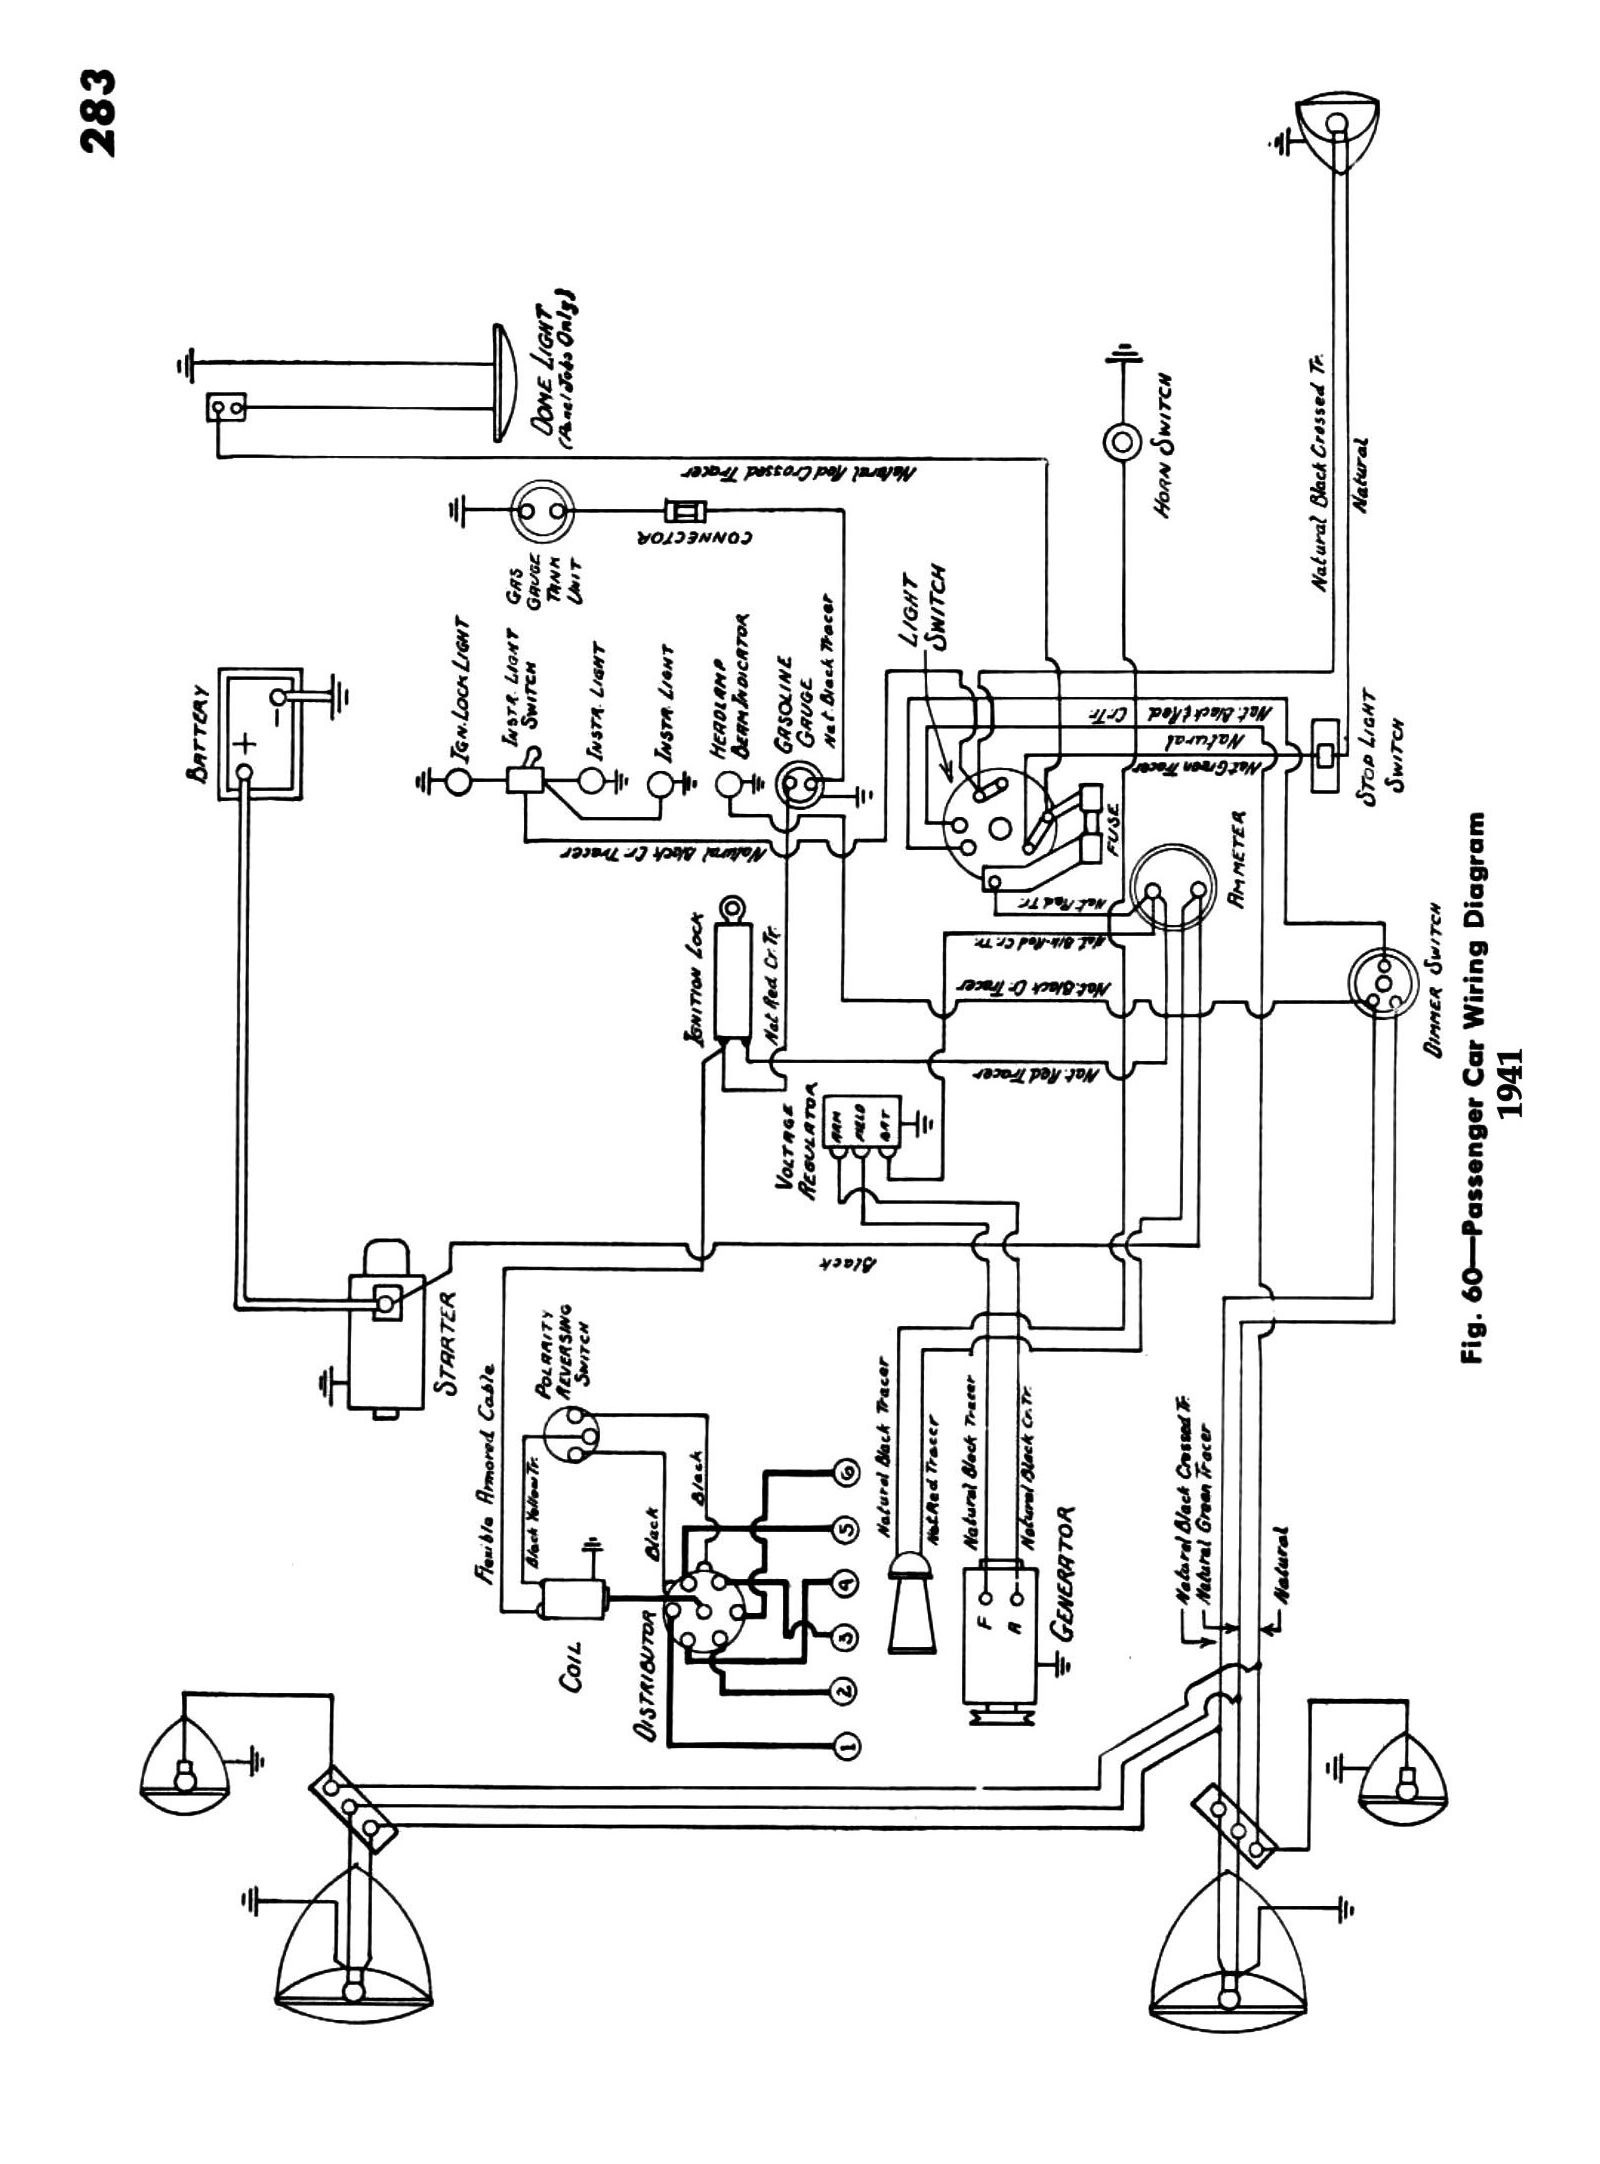 41csm283 chevy wiring diagrams 1946 chevy wiring harness instructions at creativeand.co